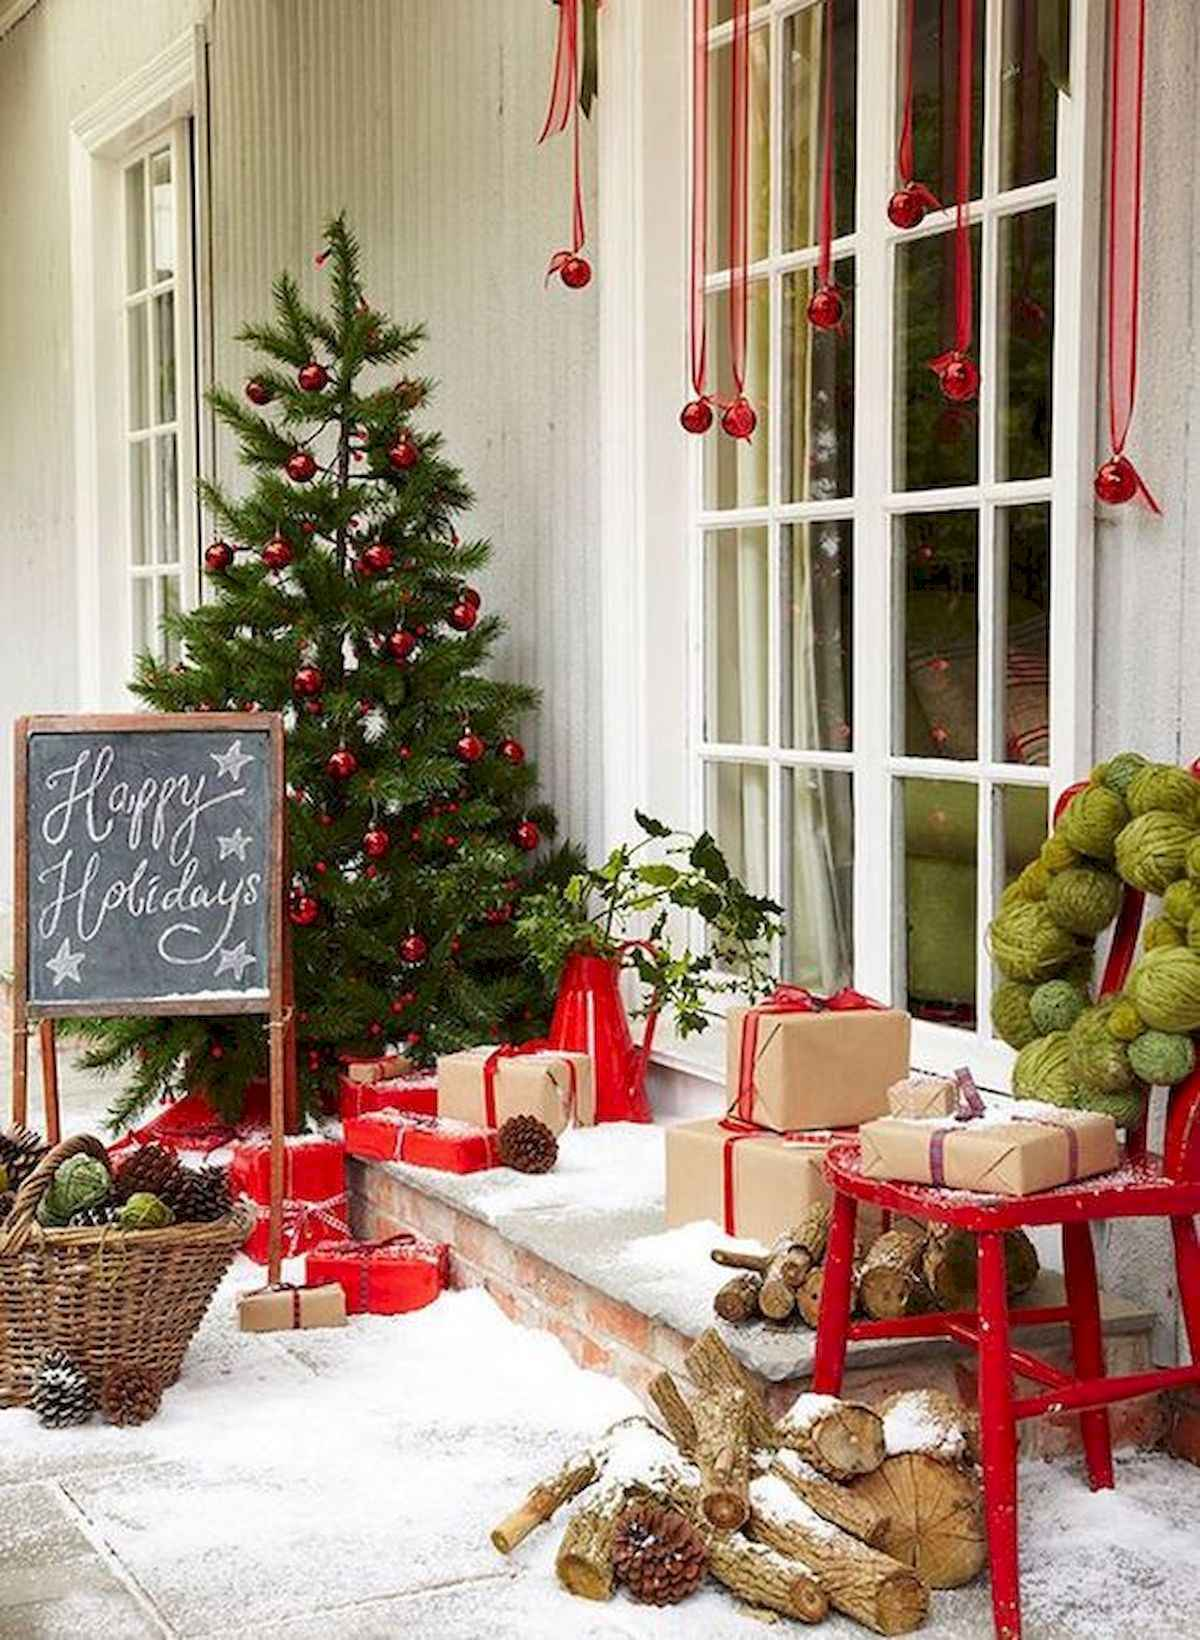 50 stunning front porch christmas lights decorations ideas (35)